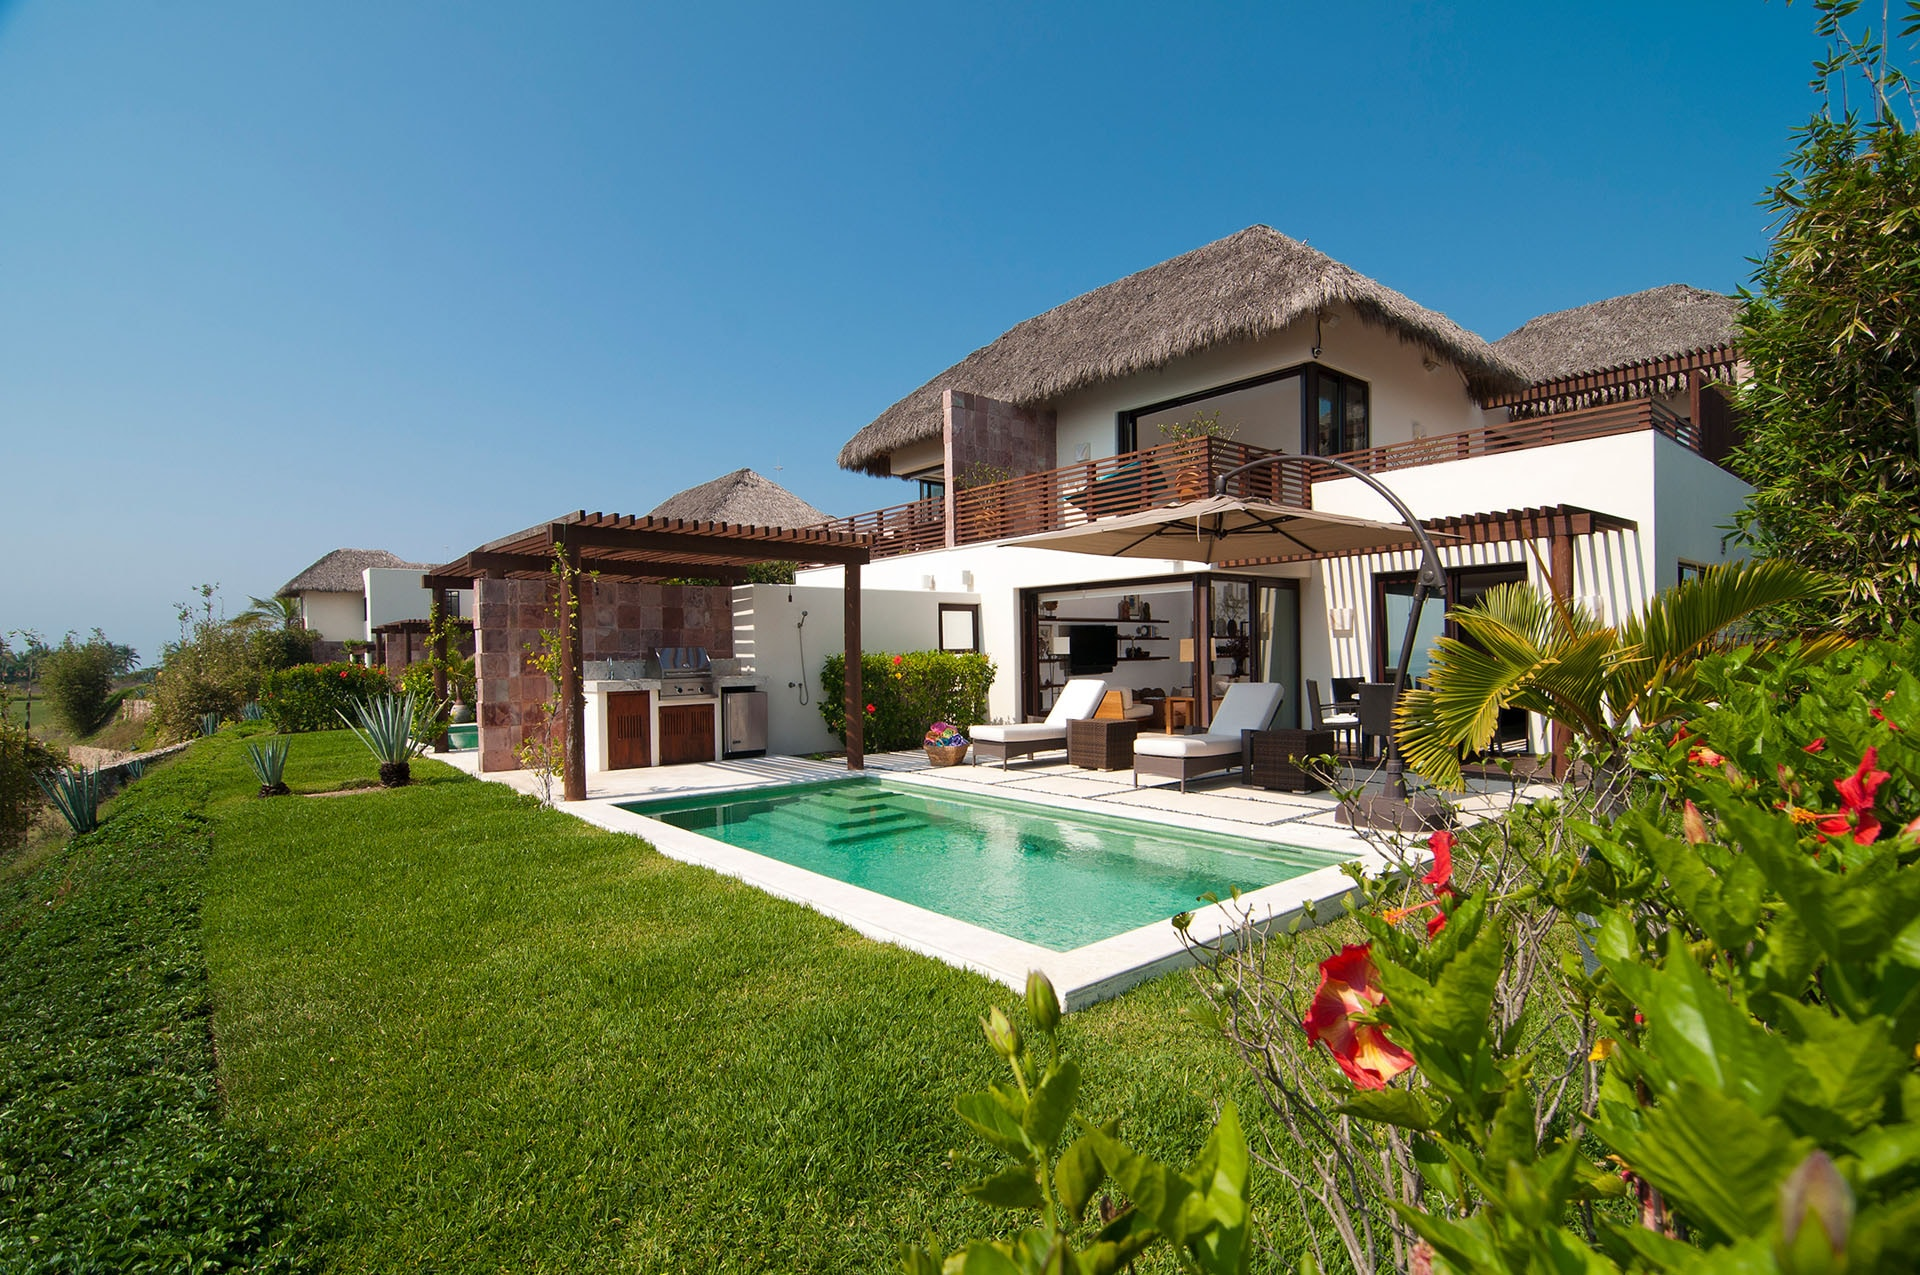 Property Image 1 - Vacation Villa with Luxurious Flair on the Mexican Coast